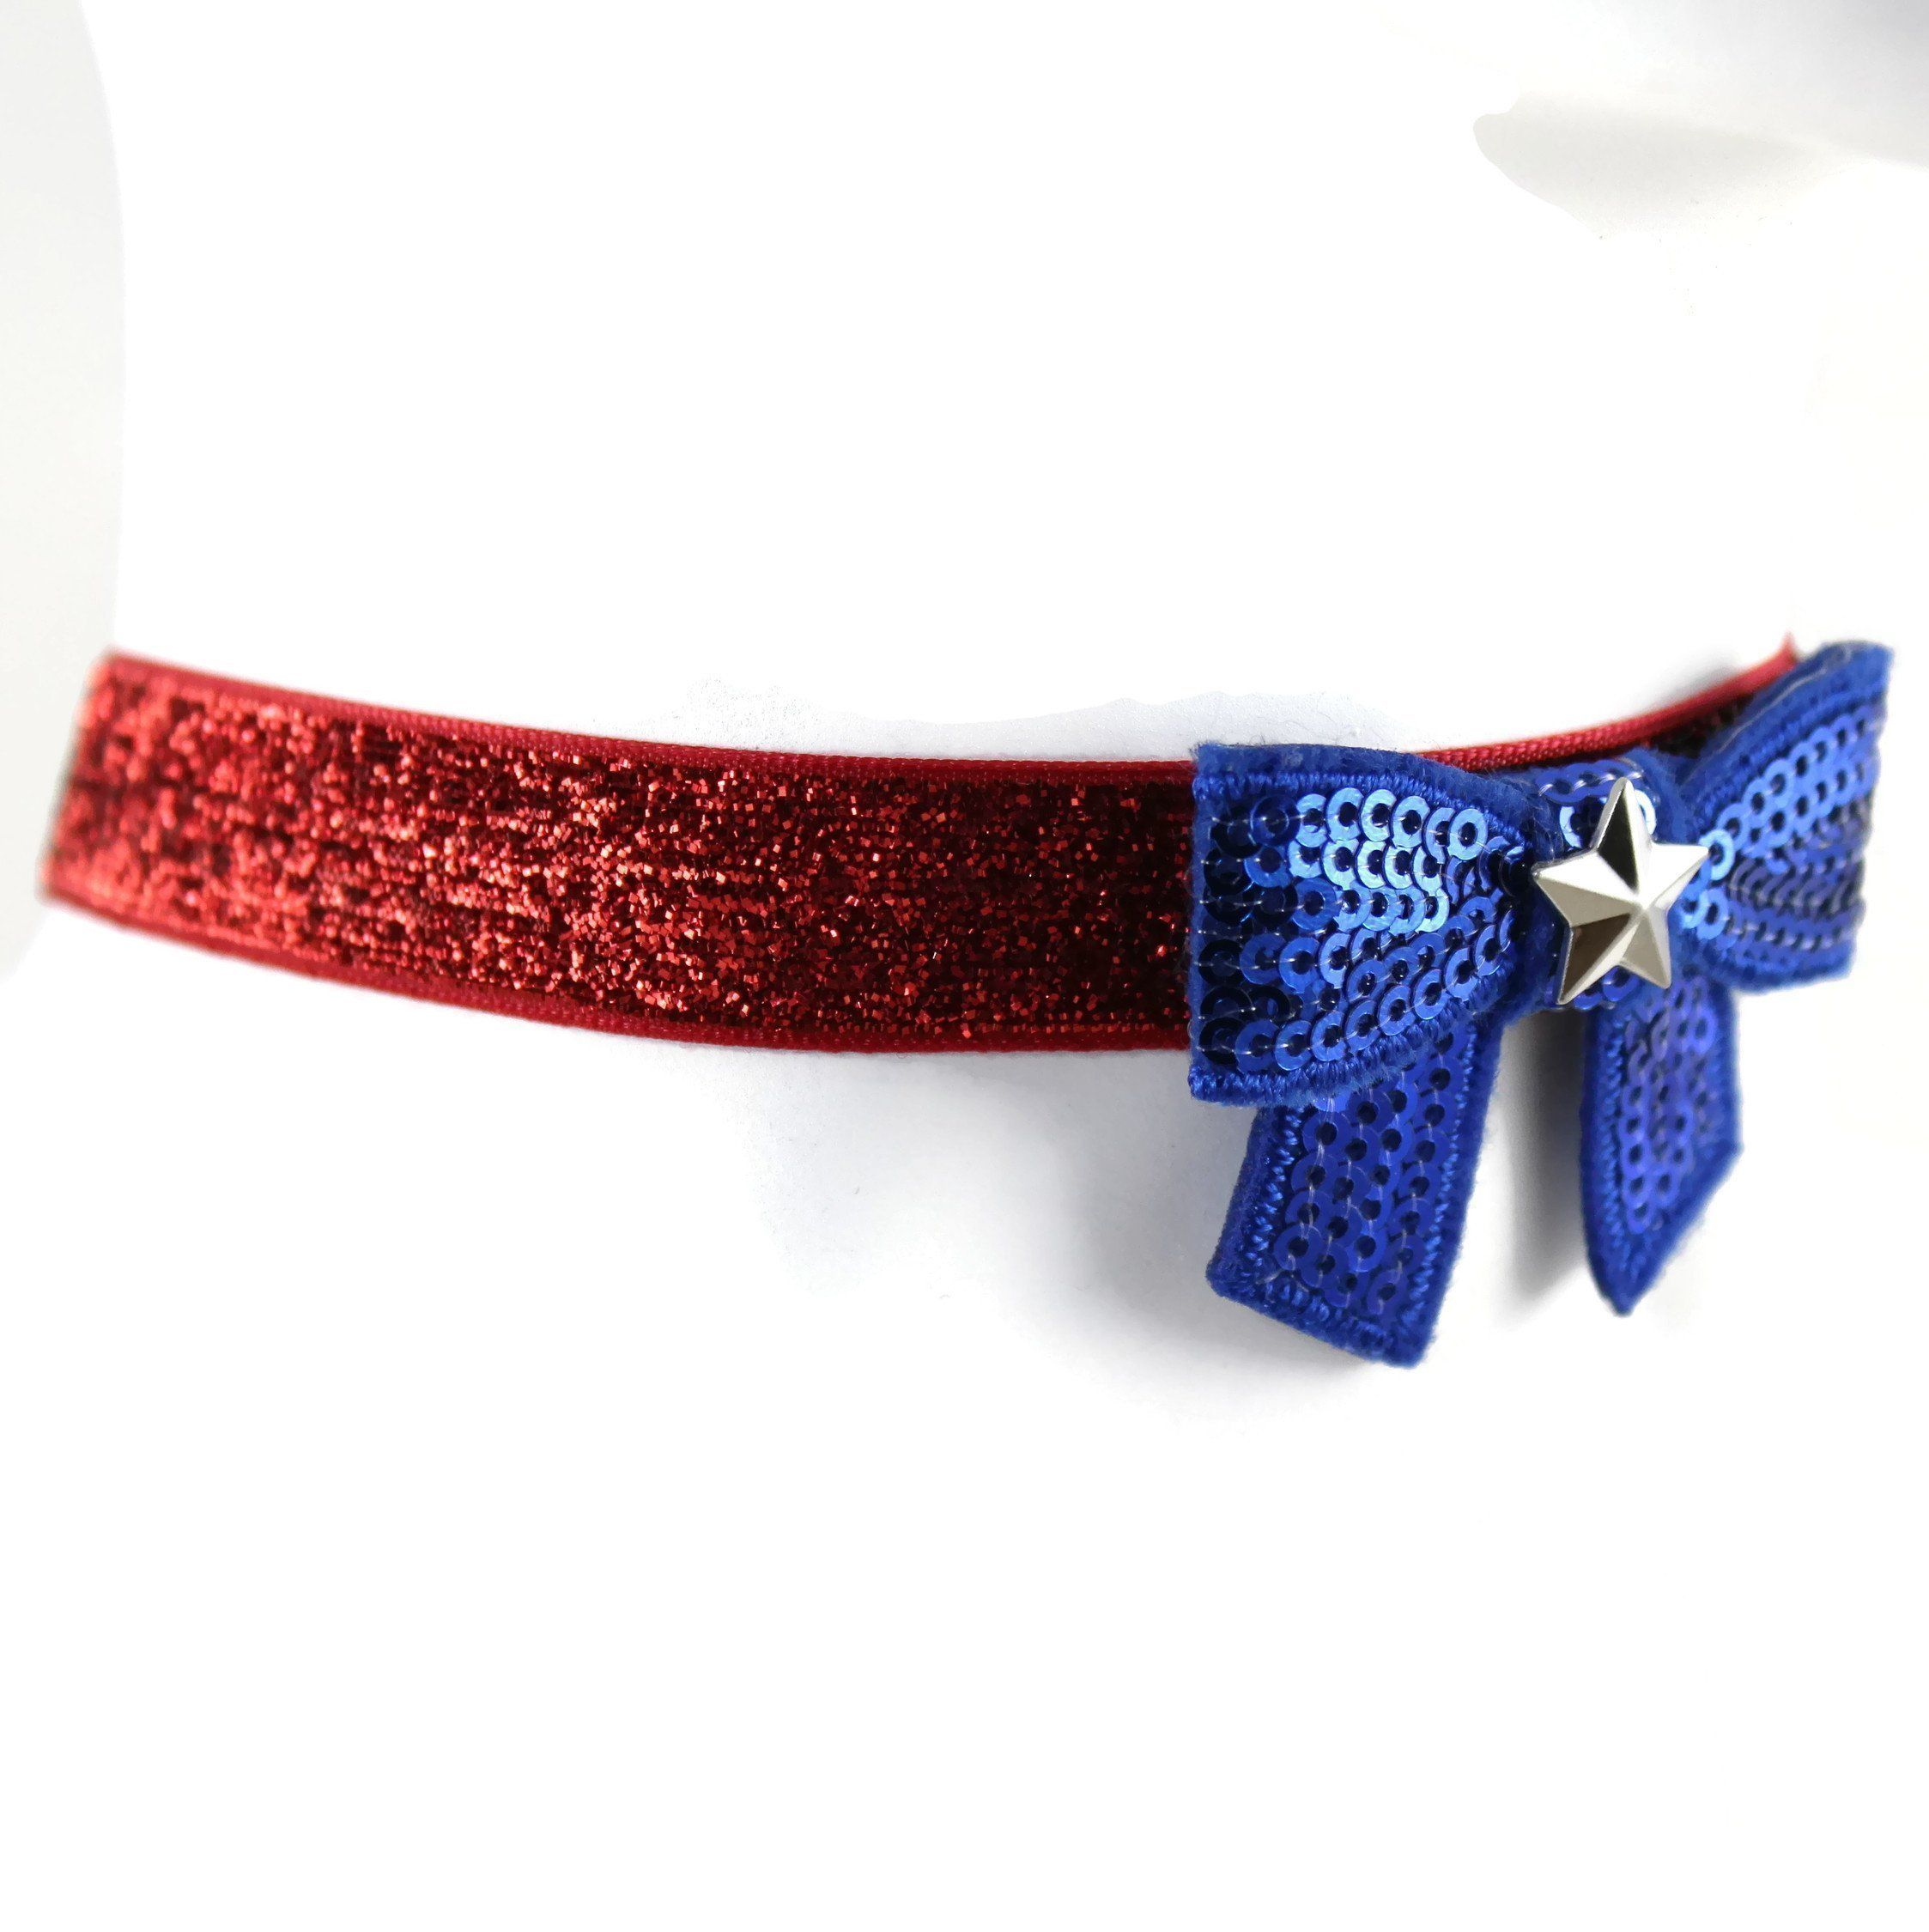 Arthlin Patriotic Women Bow Tie Choker Necklace in American Flag Colors  Glittery Red White and Blue Fun Accessory for 4th of July Made in USA    Be  sure to ... 87d1e3aae285